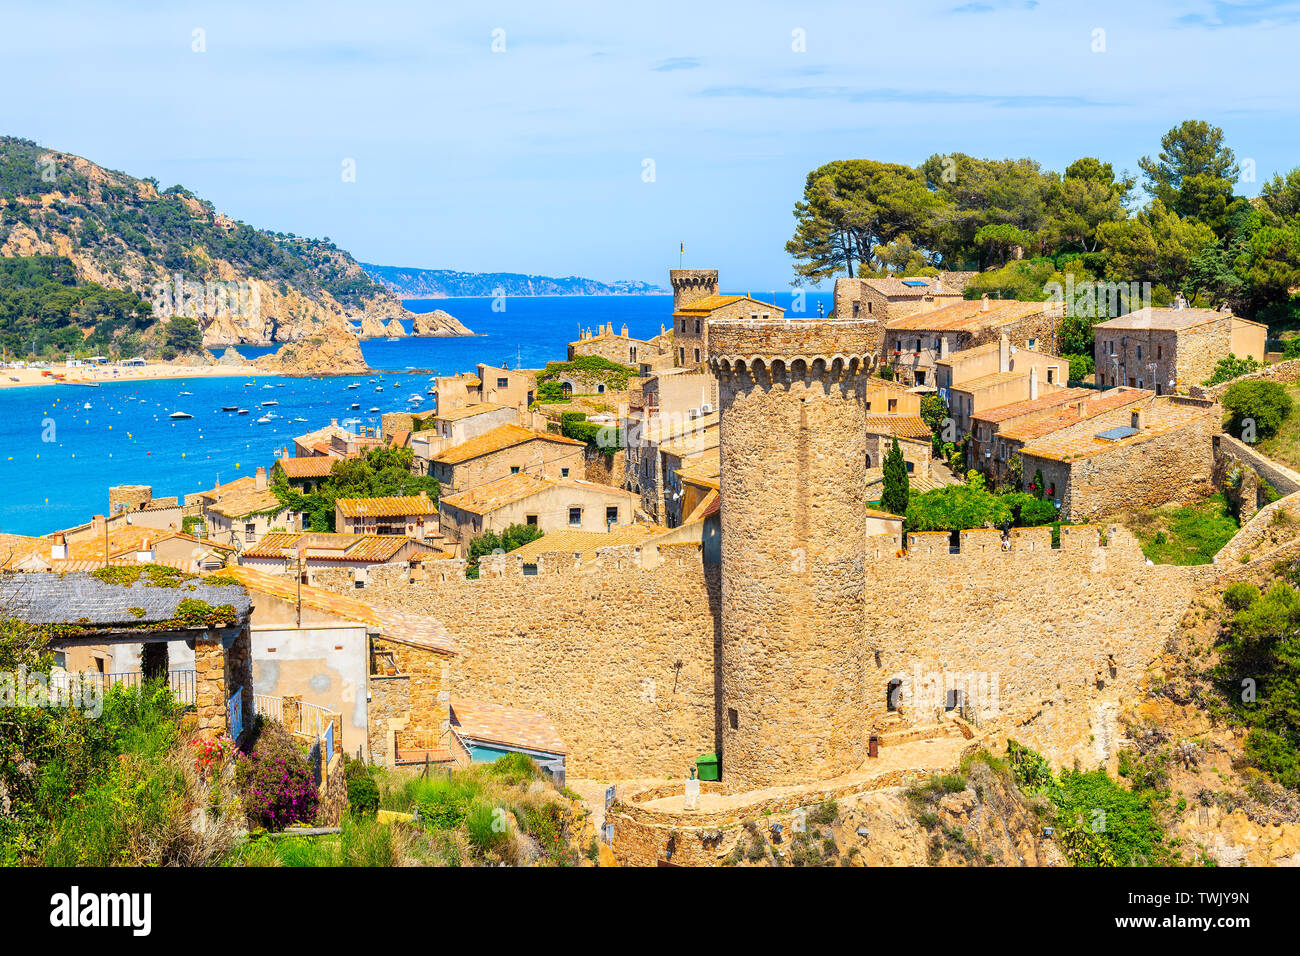 Tossa de Mar and view of castle with old town, Costa Brava, Spain Stock Photo